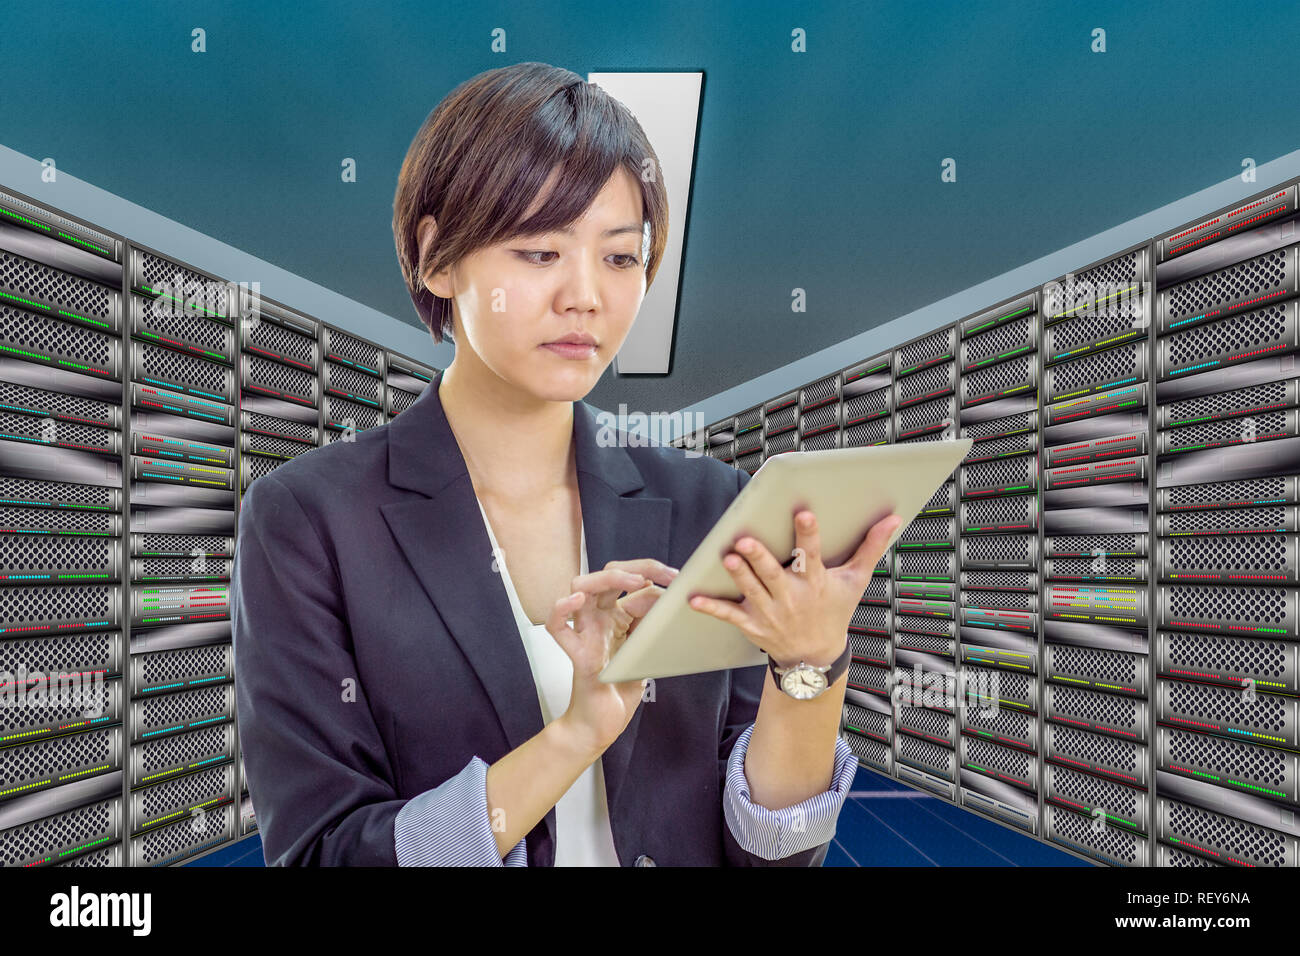 Asian IT network engineer in server room - Stock Image